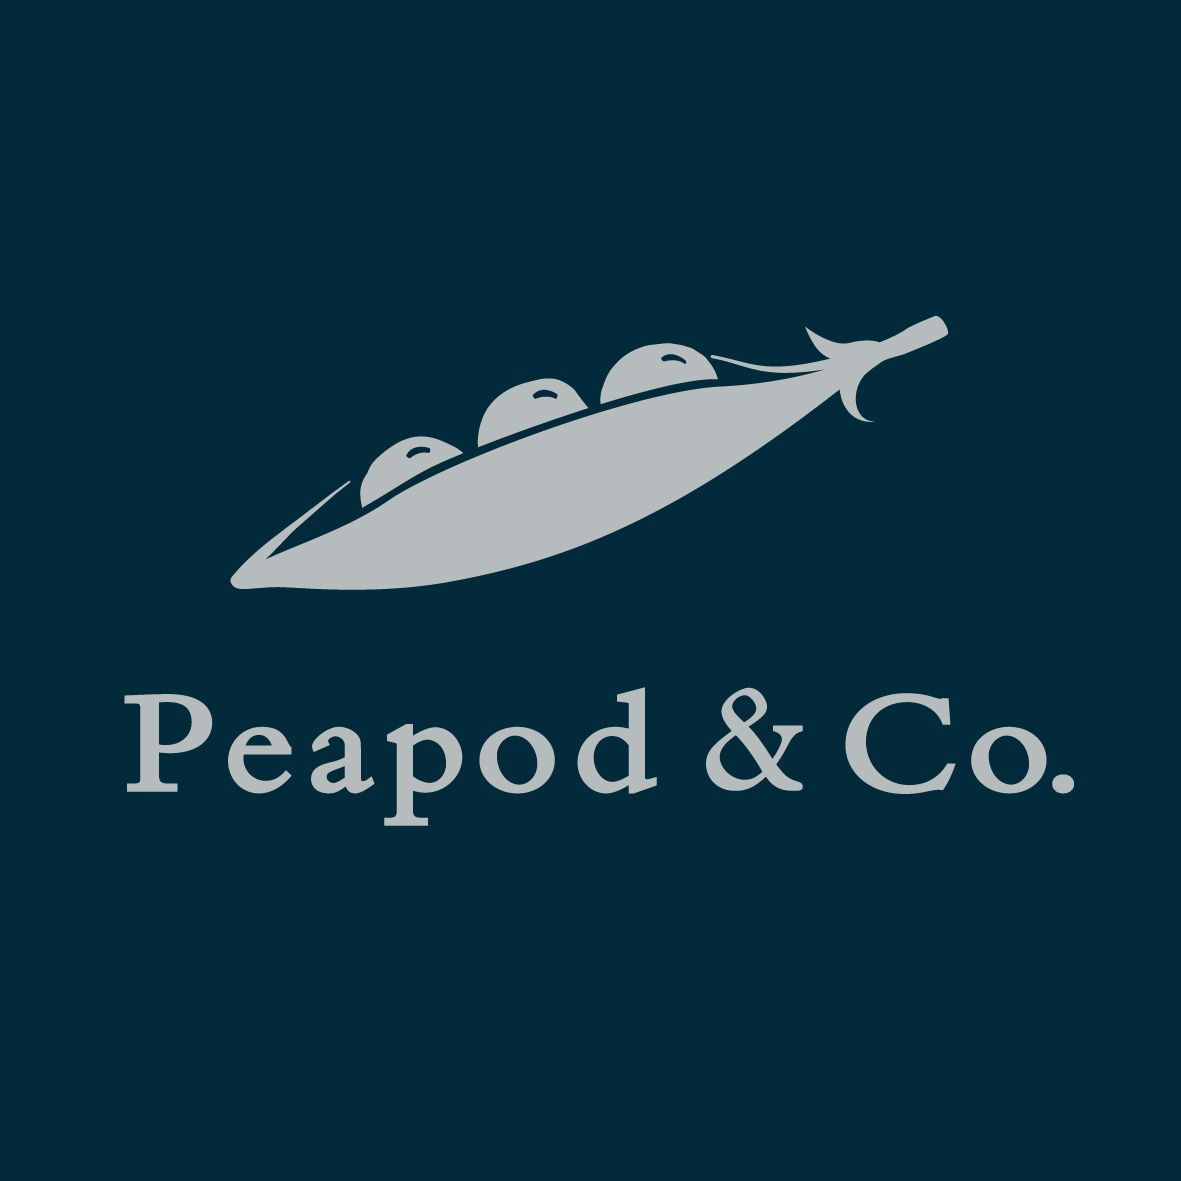 Peapod & Co. Logo